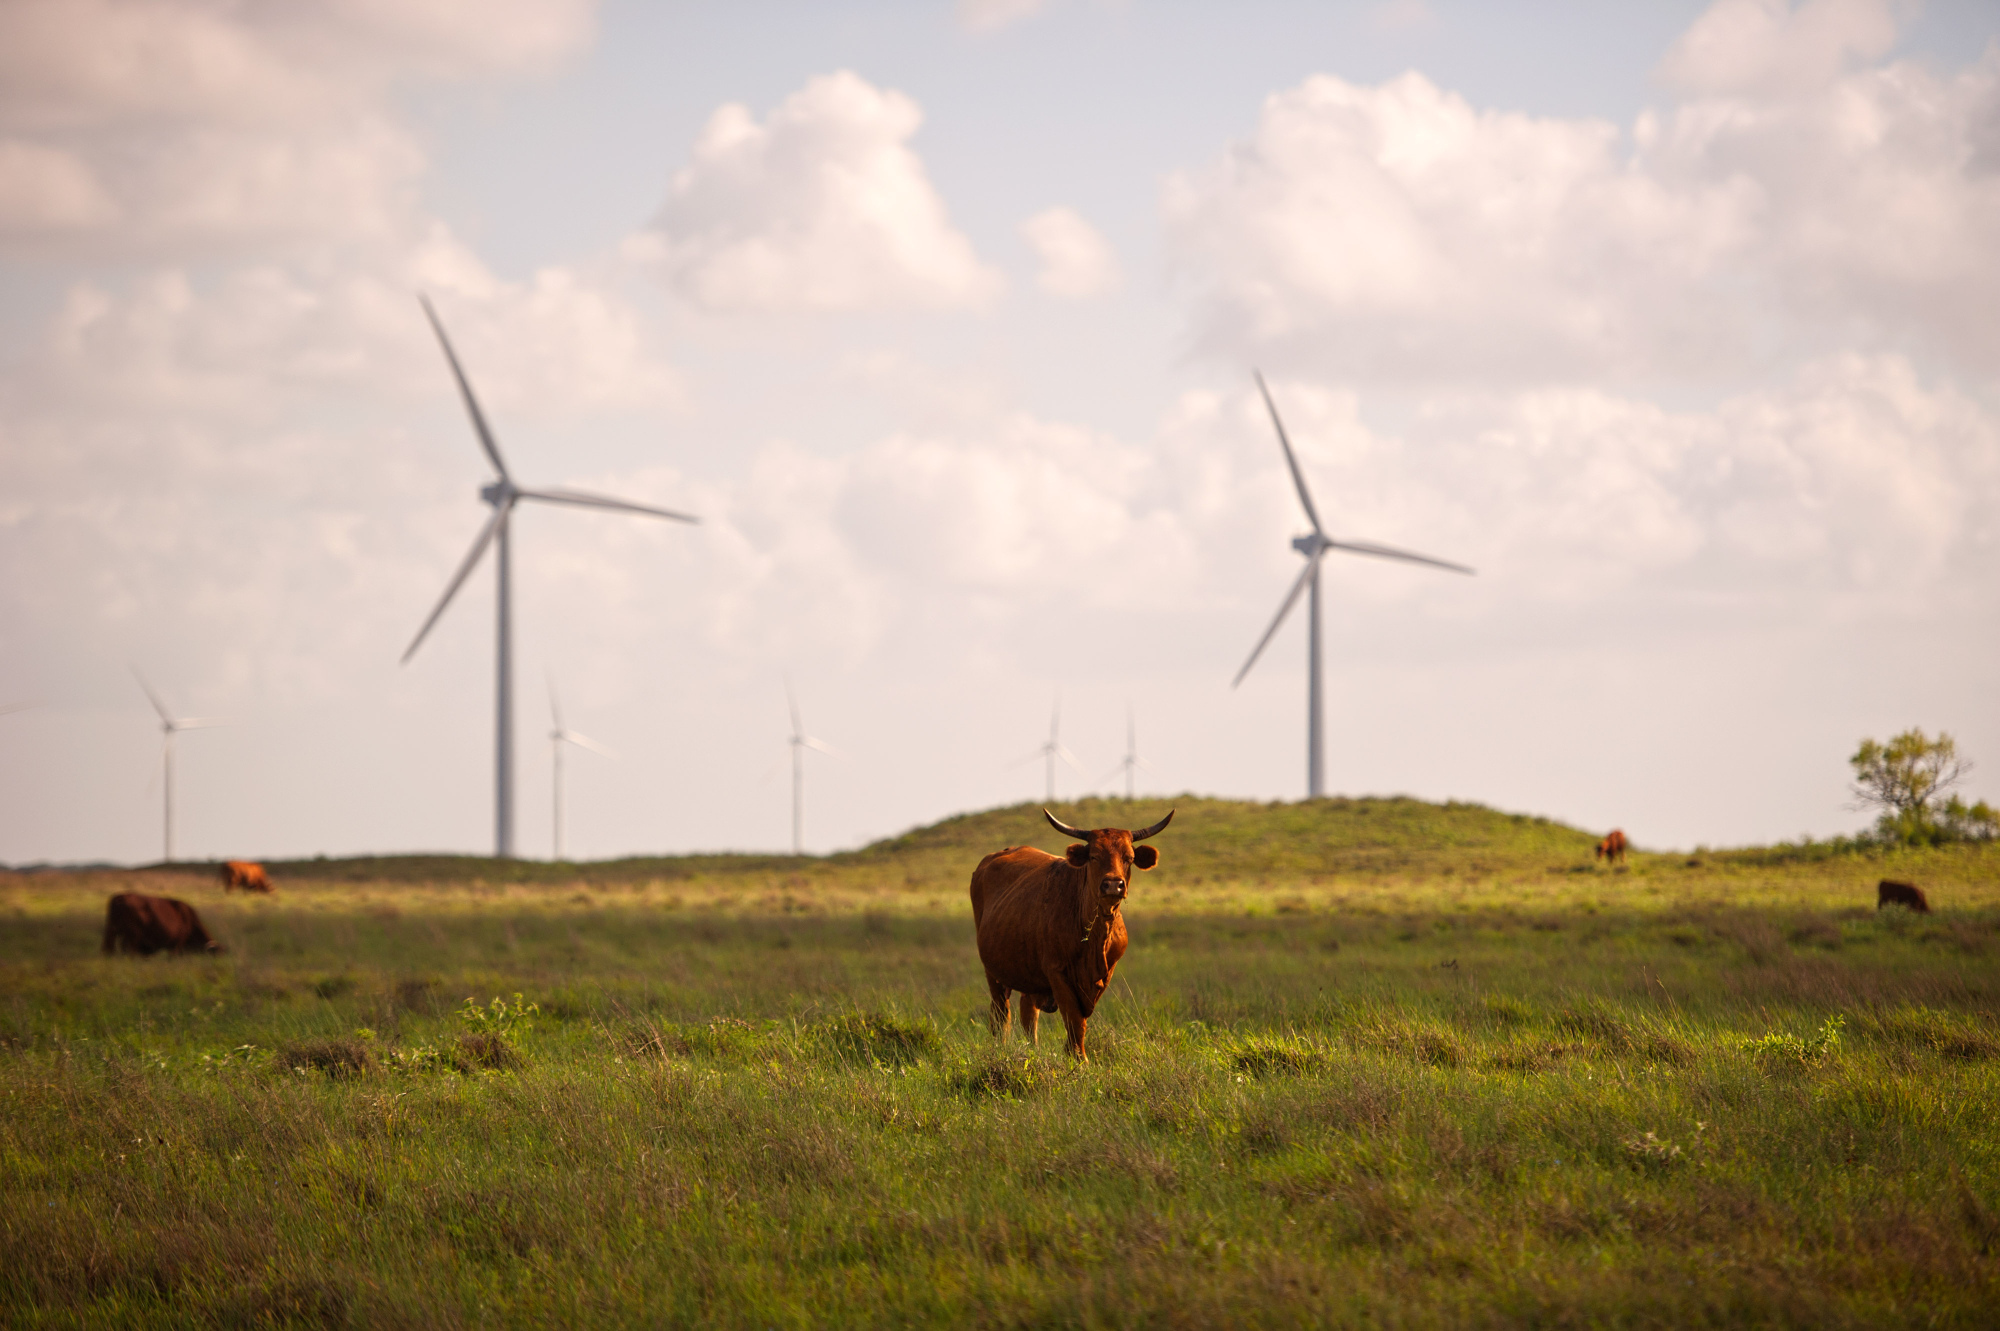 Cattle graze near wind turbines in Sarita, Texas. Photographer: Eddie Seal/Bloomberg